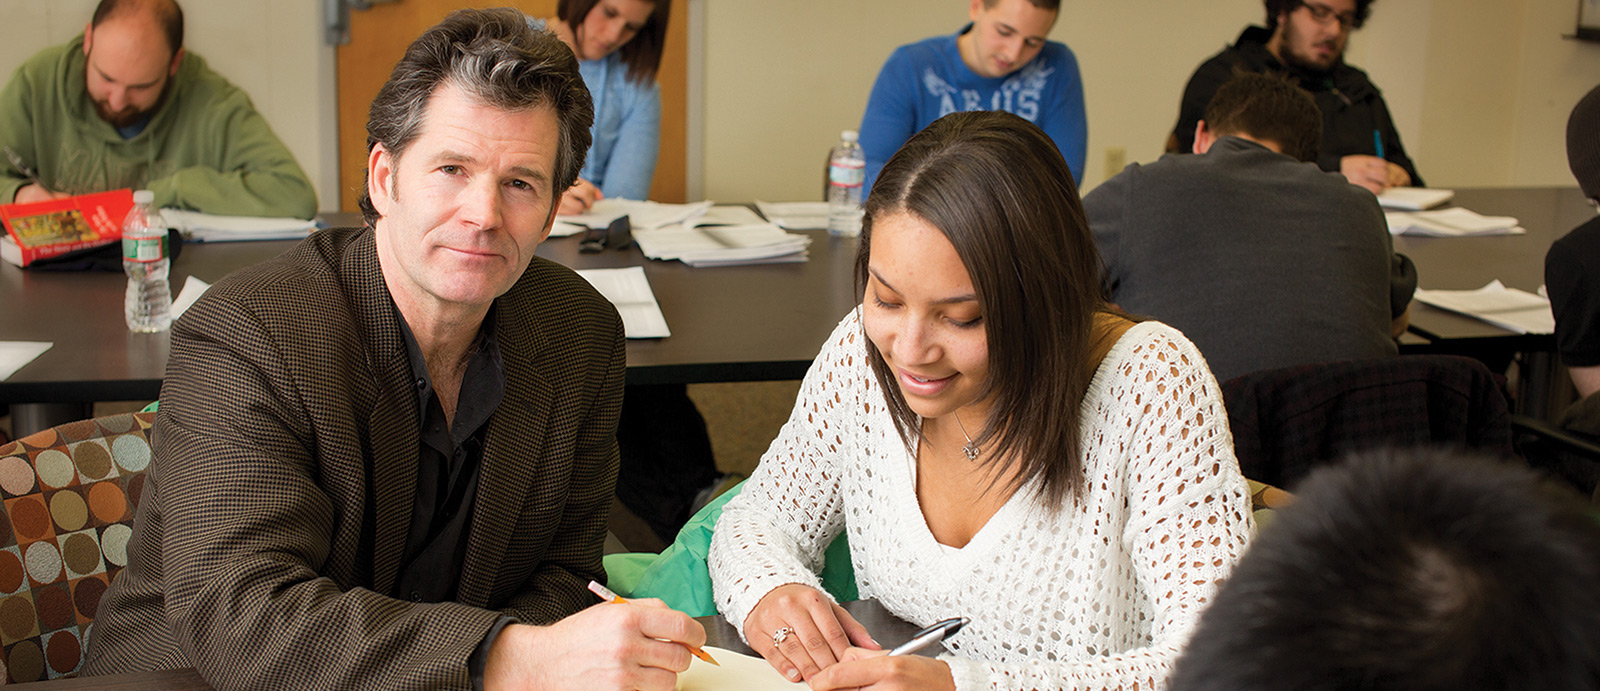 Andre Dubus III poses with a student